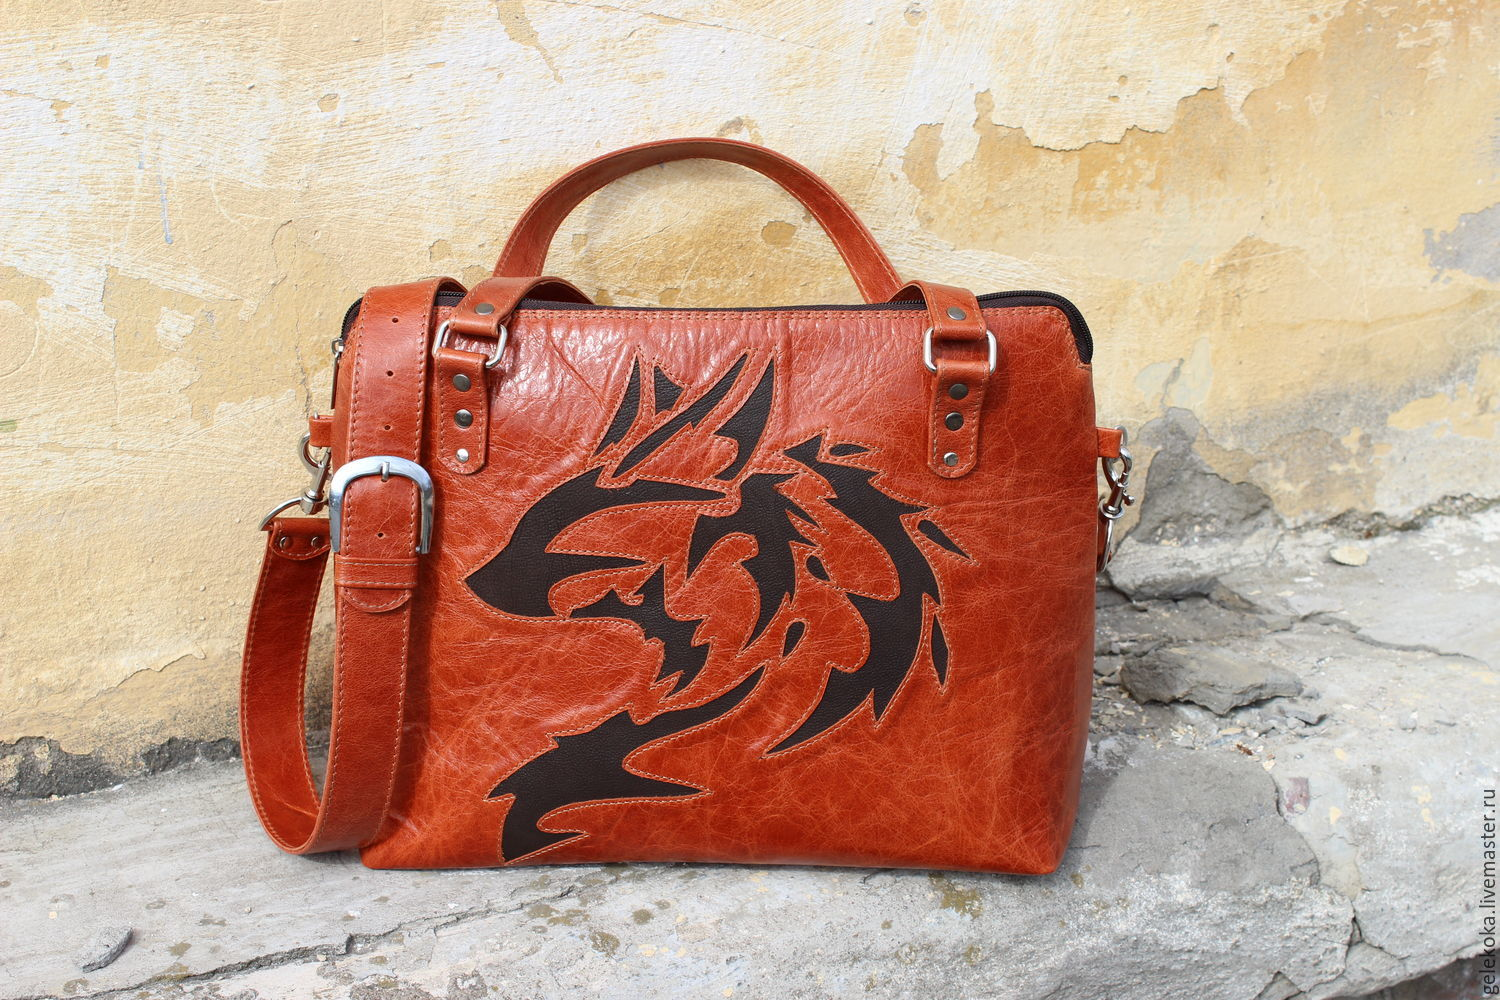 Bag from a genuine leather with reverse applique u shop online on